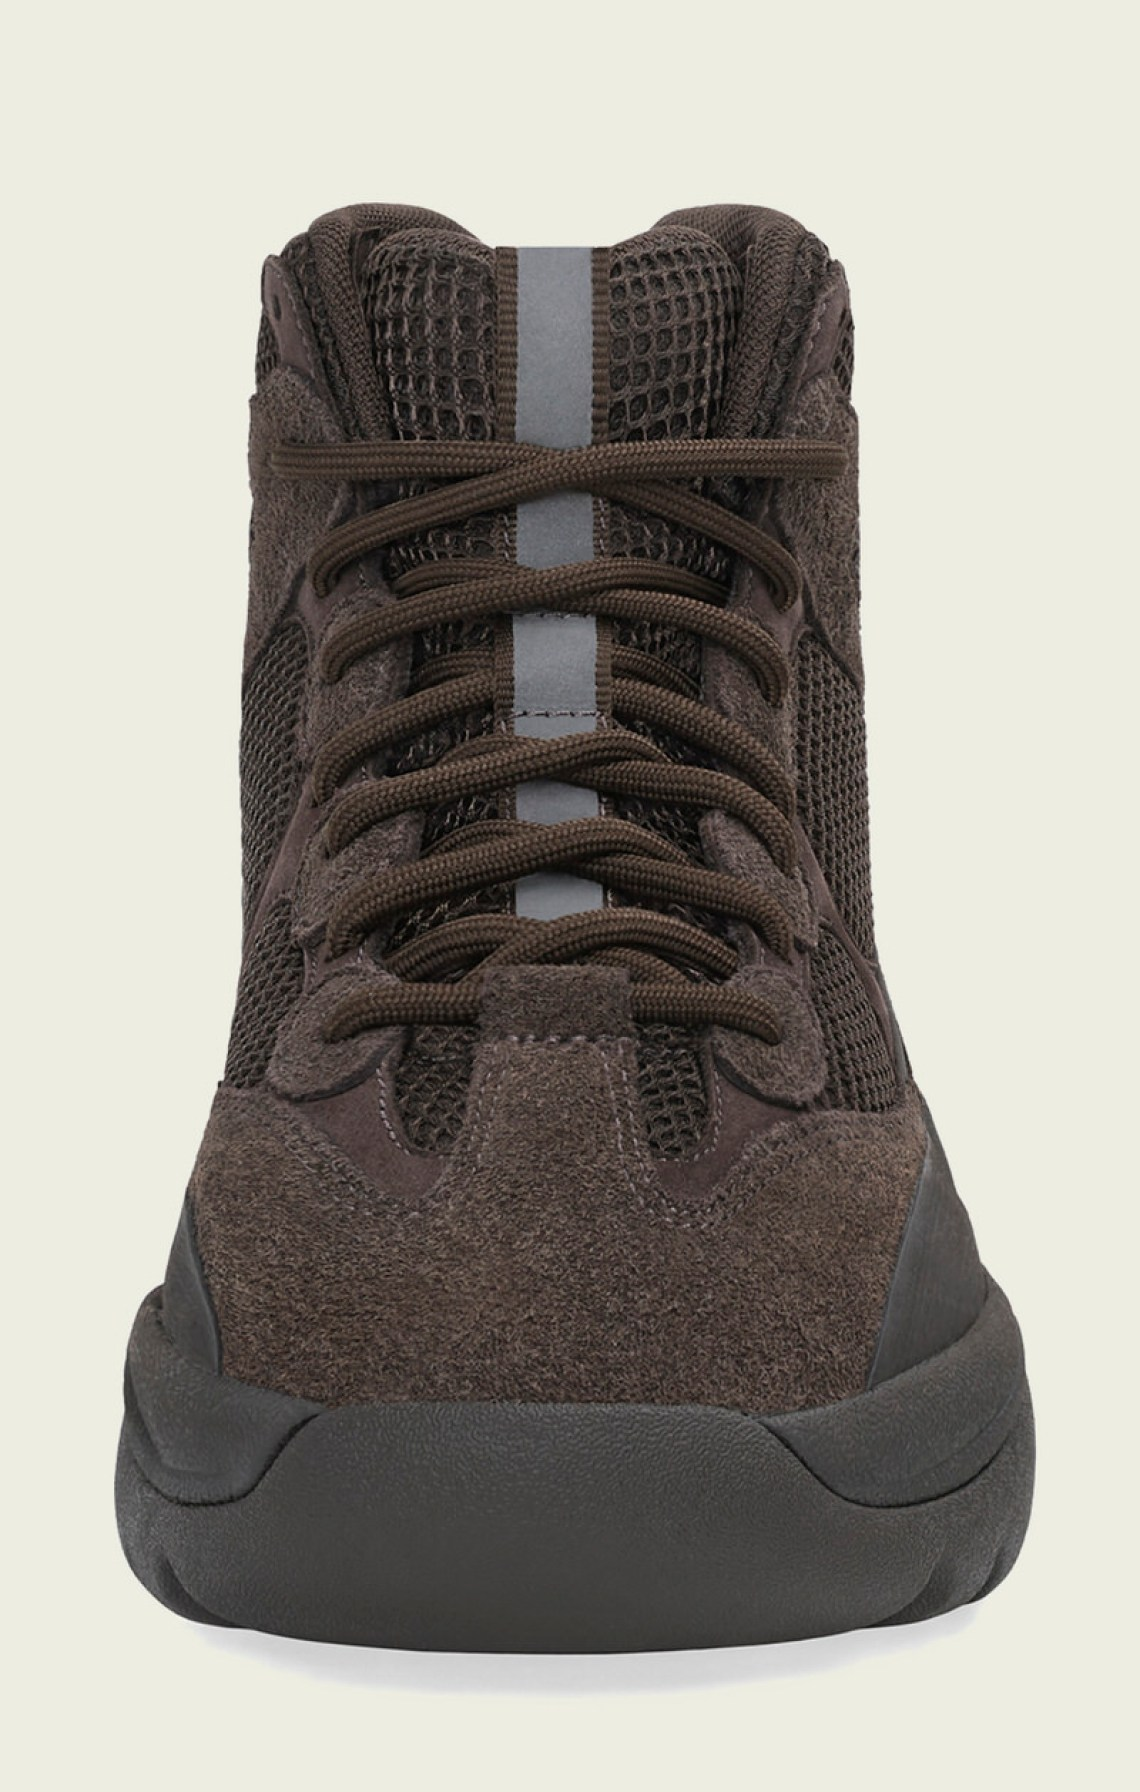 f28dcd7d650 The  200 adidas Yeezy DSRT Boot is Set to Drop in Another Colorway ...